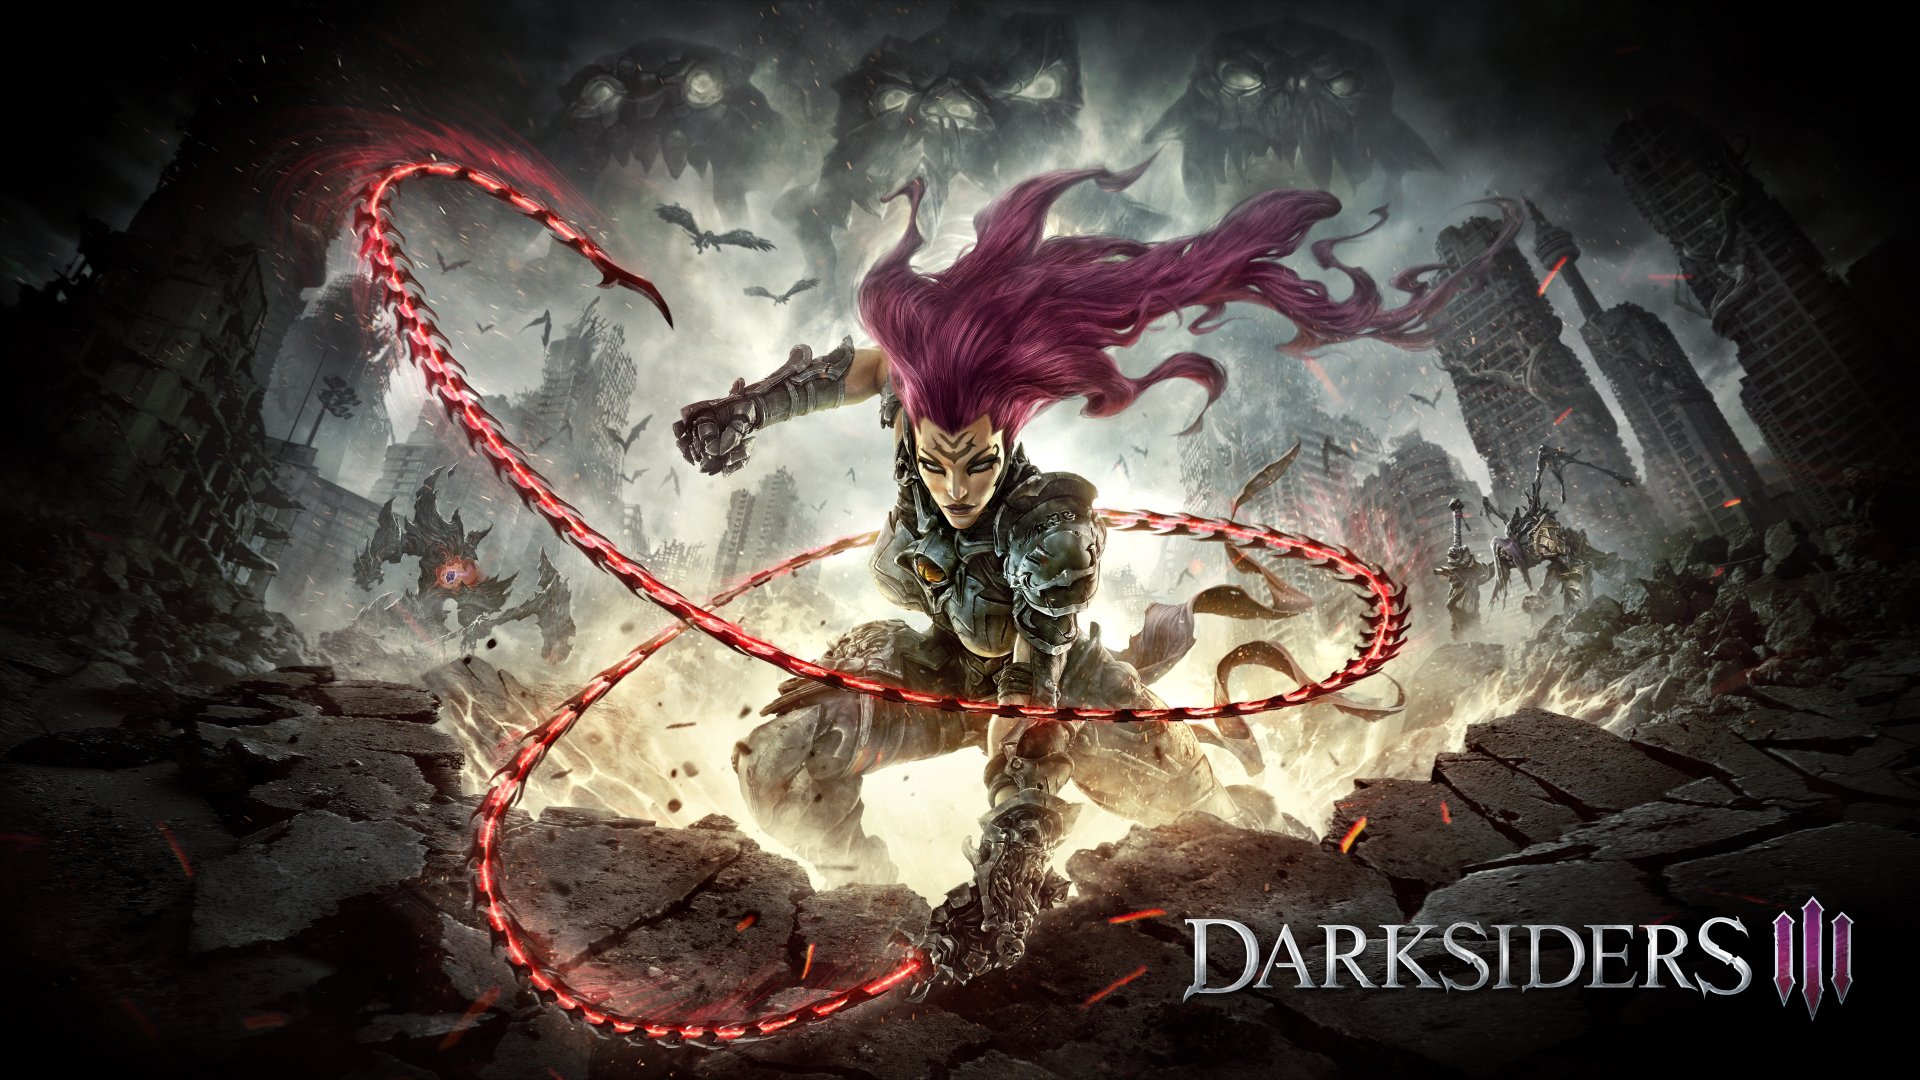 14 Darksiders III HD Wallpapers Background Images 1920x1080